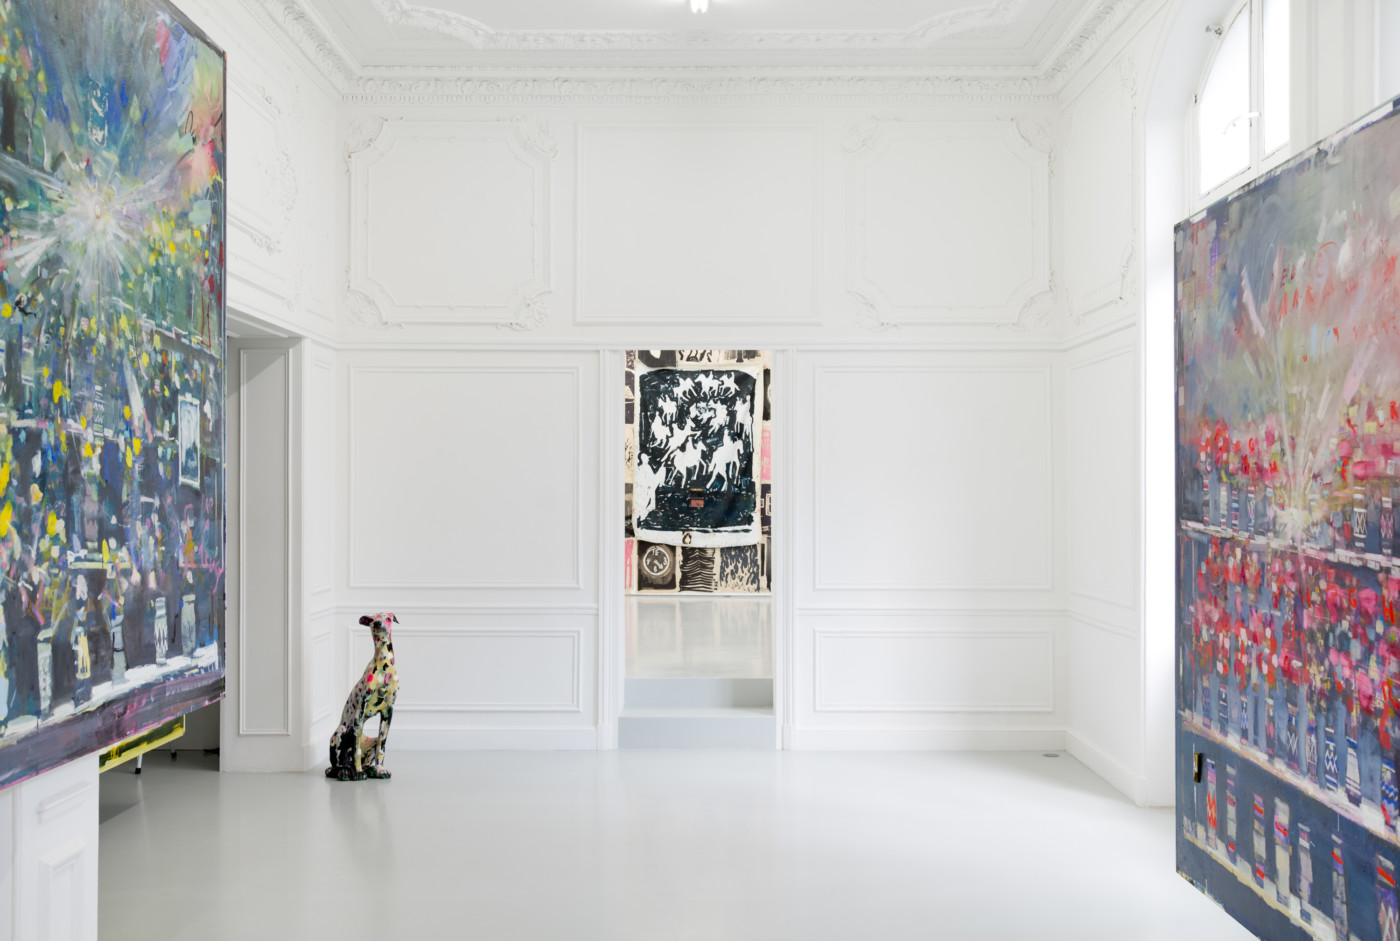 NATHAN ZEIDMAN  walflowers, malflowers , 2018, High Art, Paris, installation view - High Art Gallery Paris